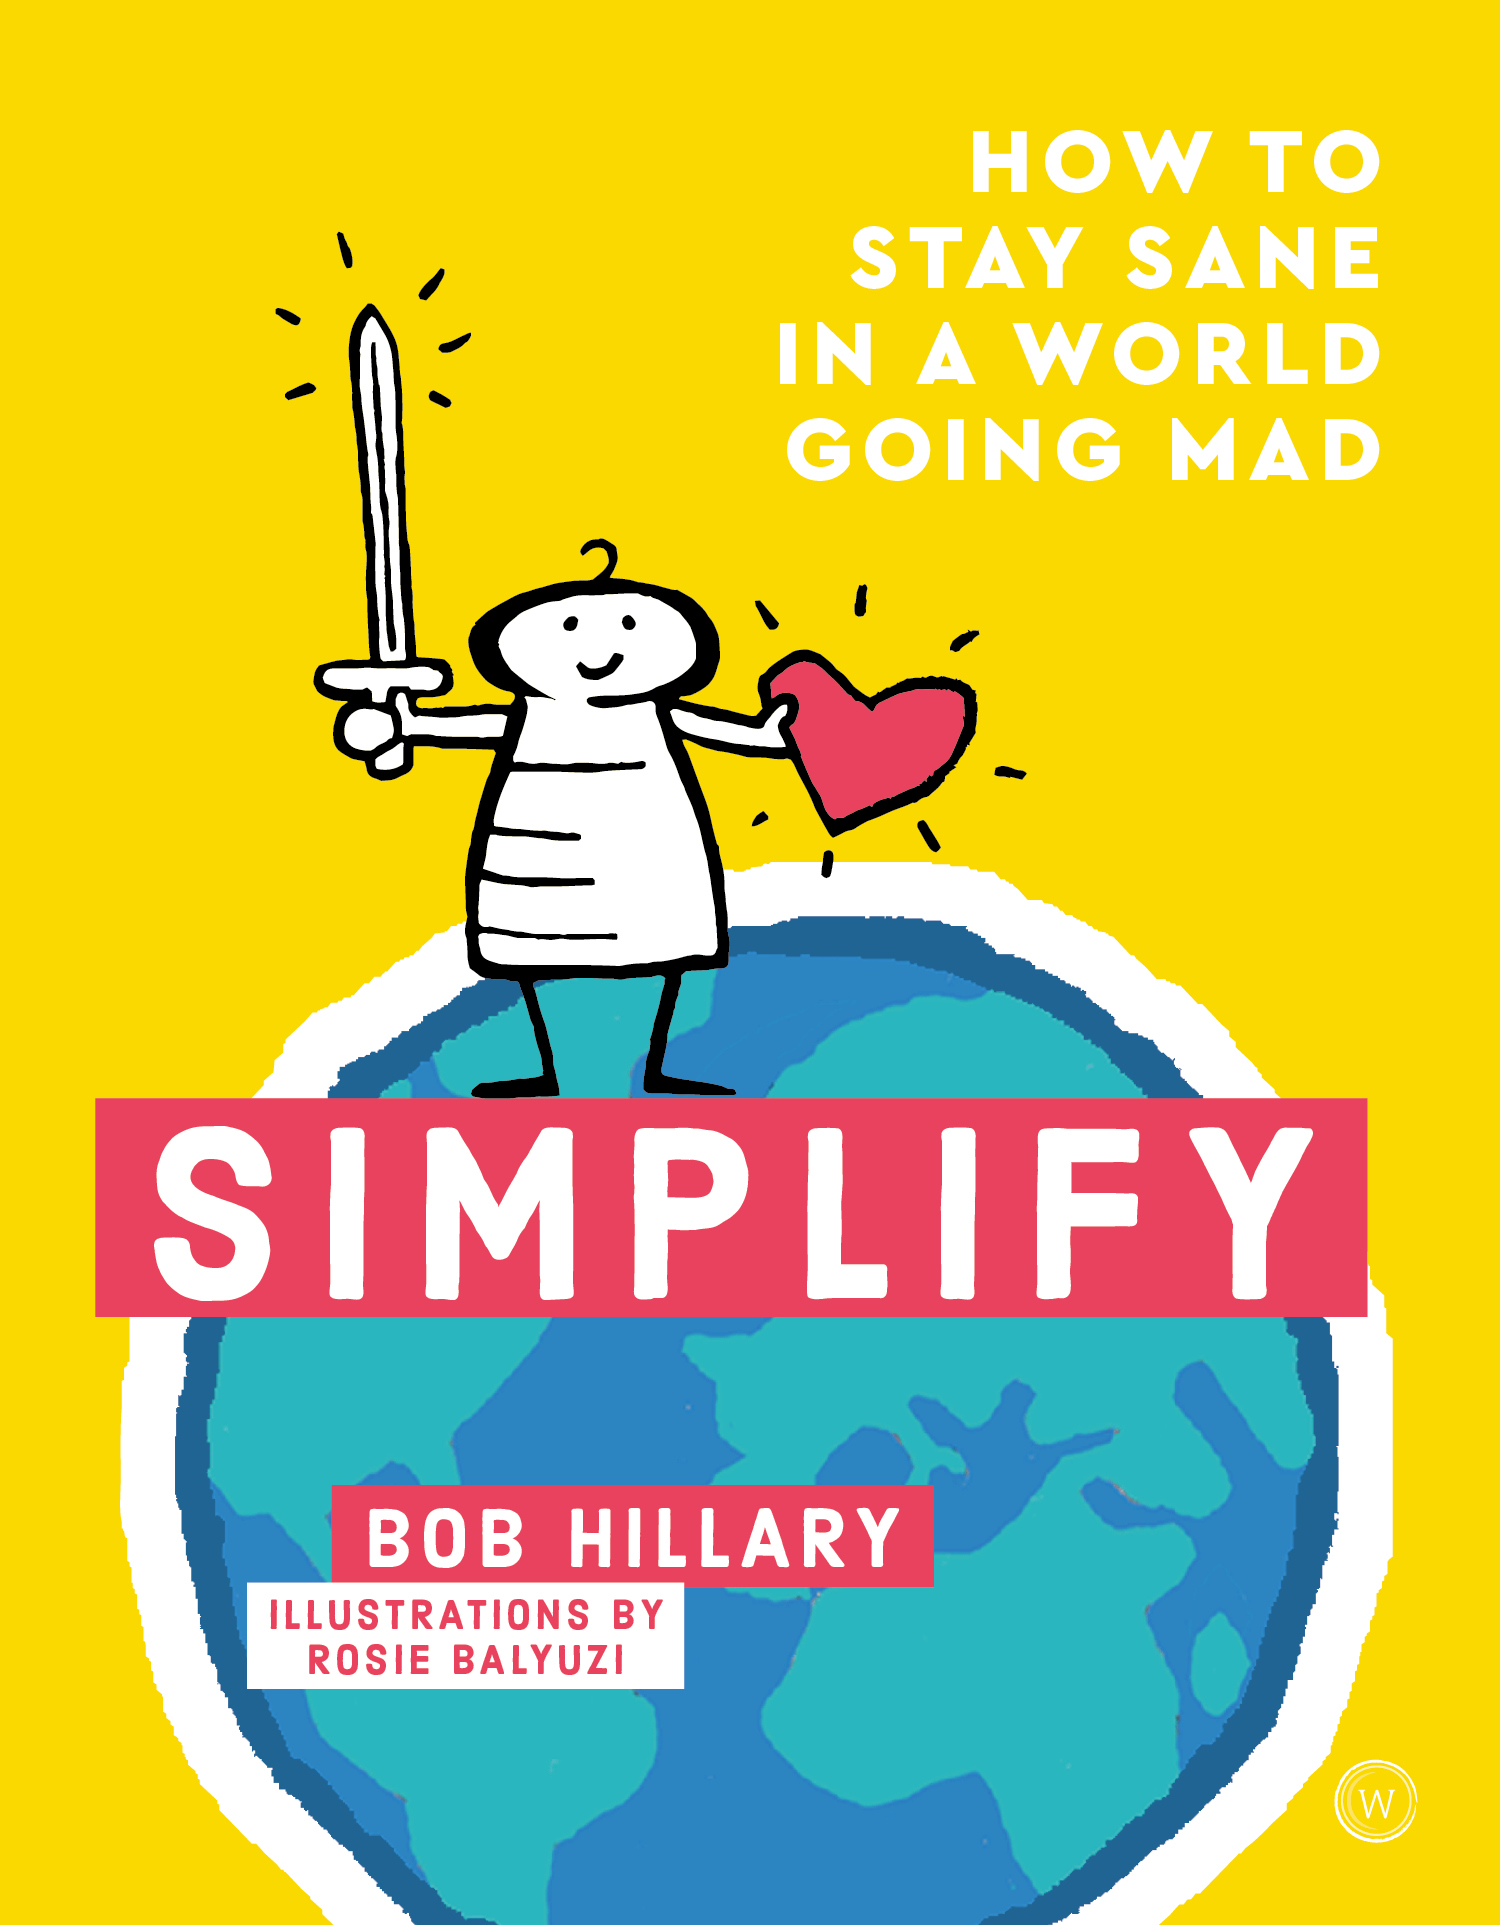 Simplify How to Stay Sane in a World Going Mad